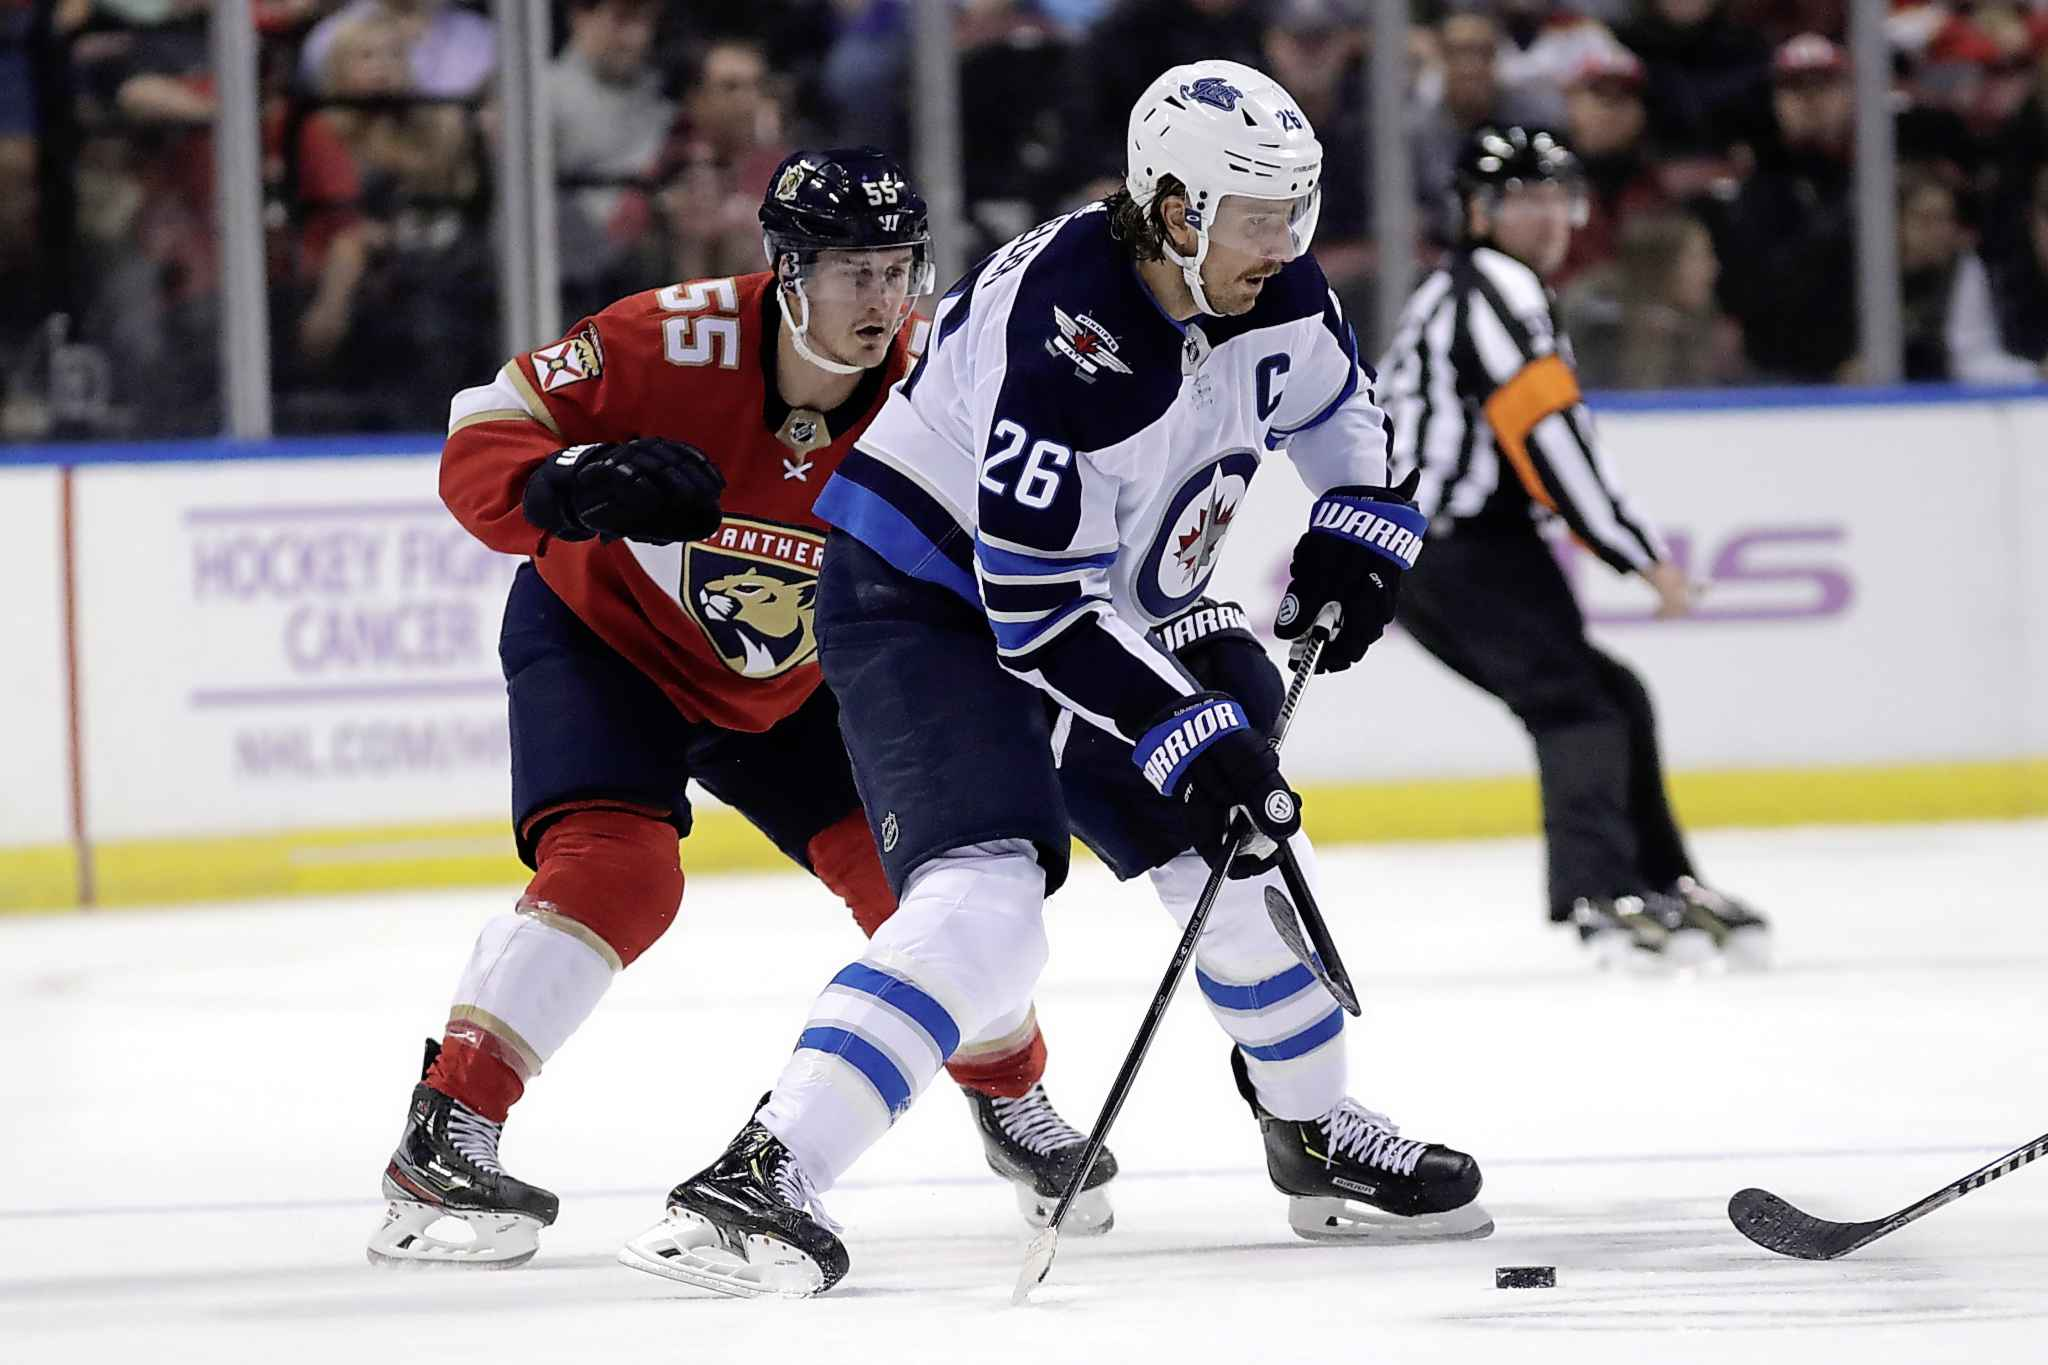 Winnipeg Jets' Blake Wheeler looks to pass as Florida Panthers' Noel Acciari defends during the first period.